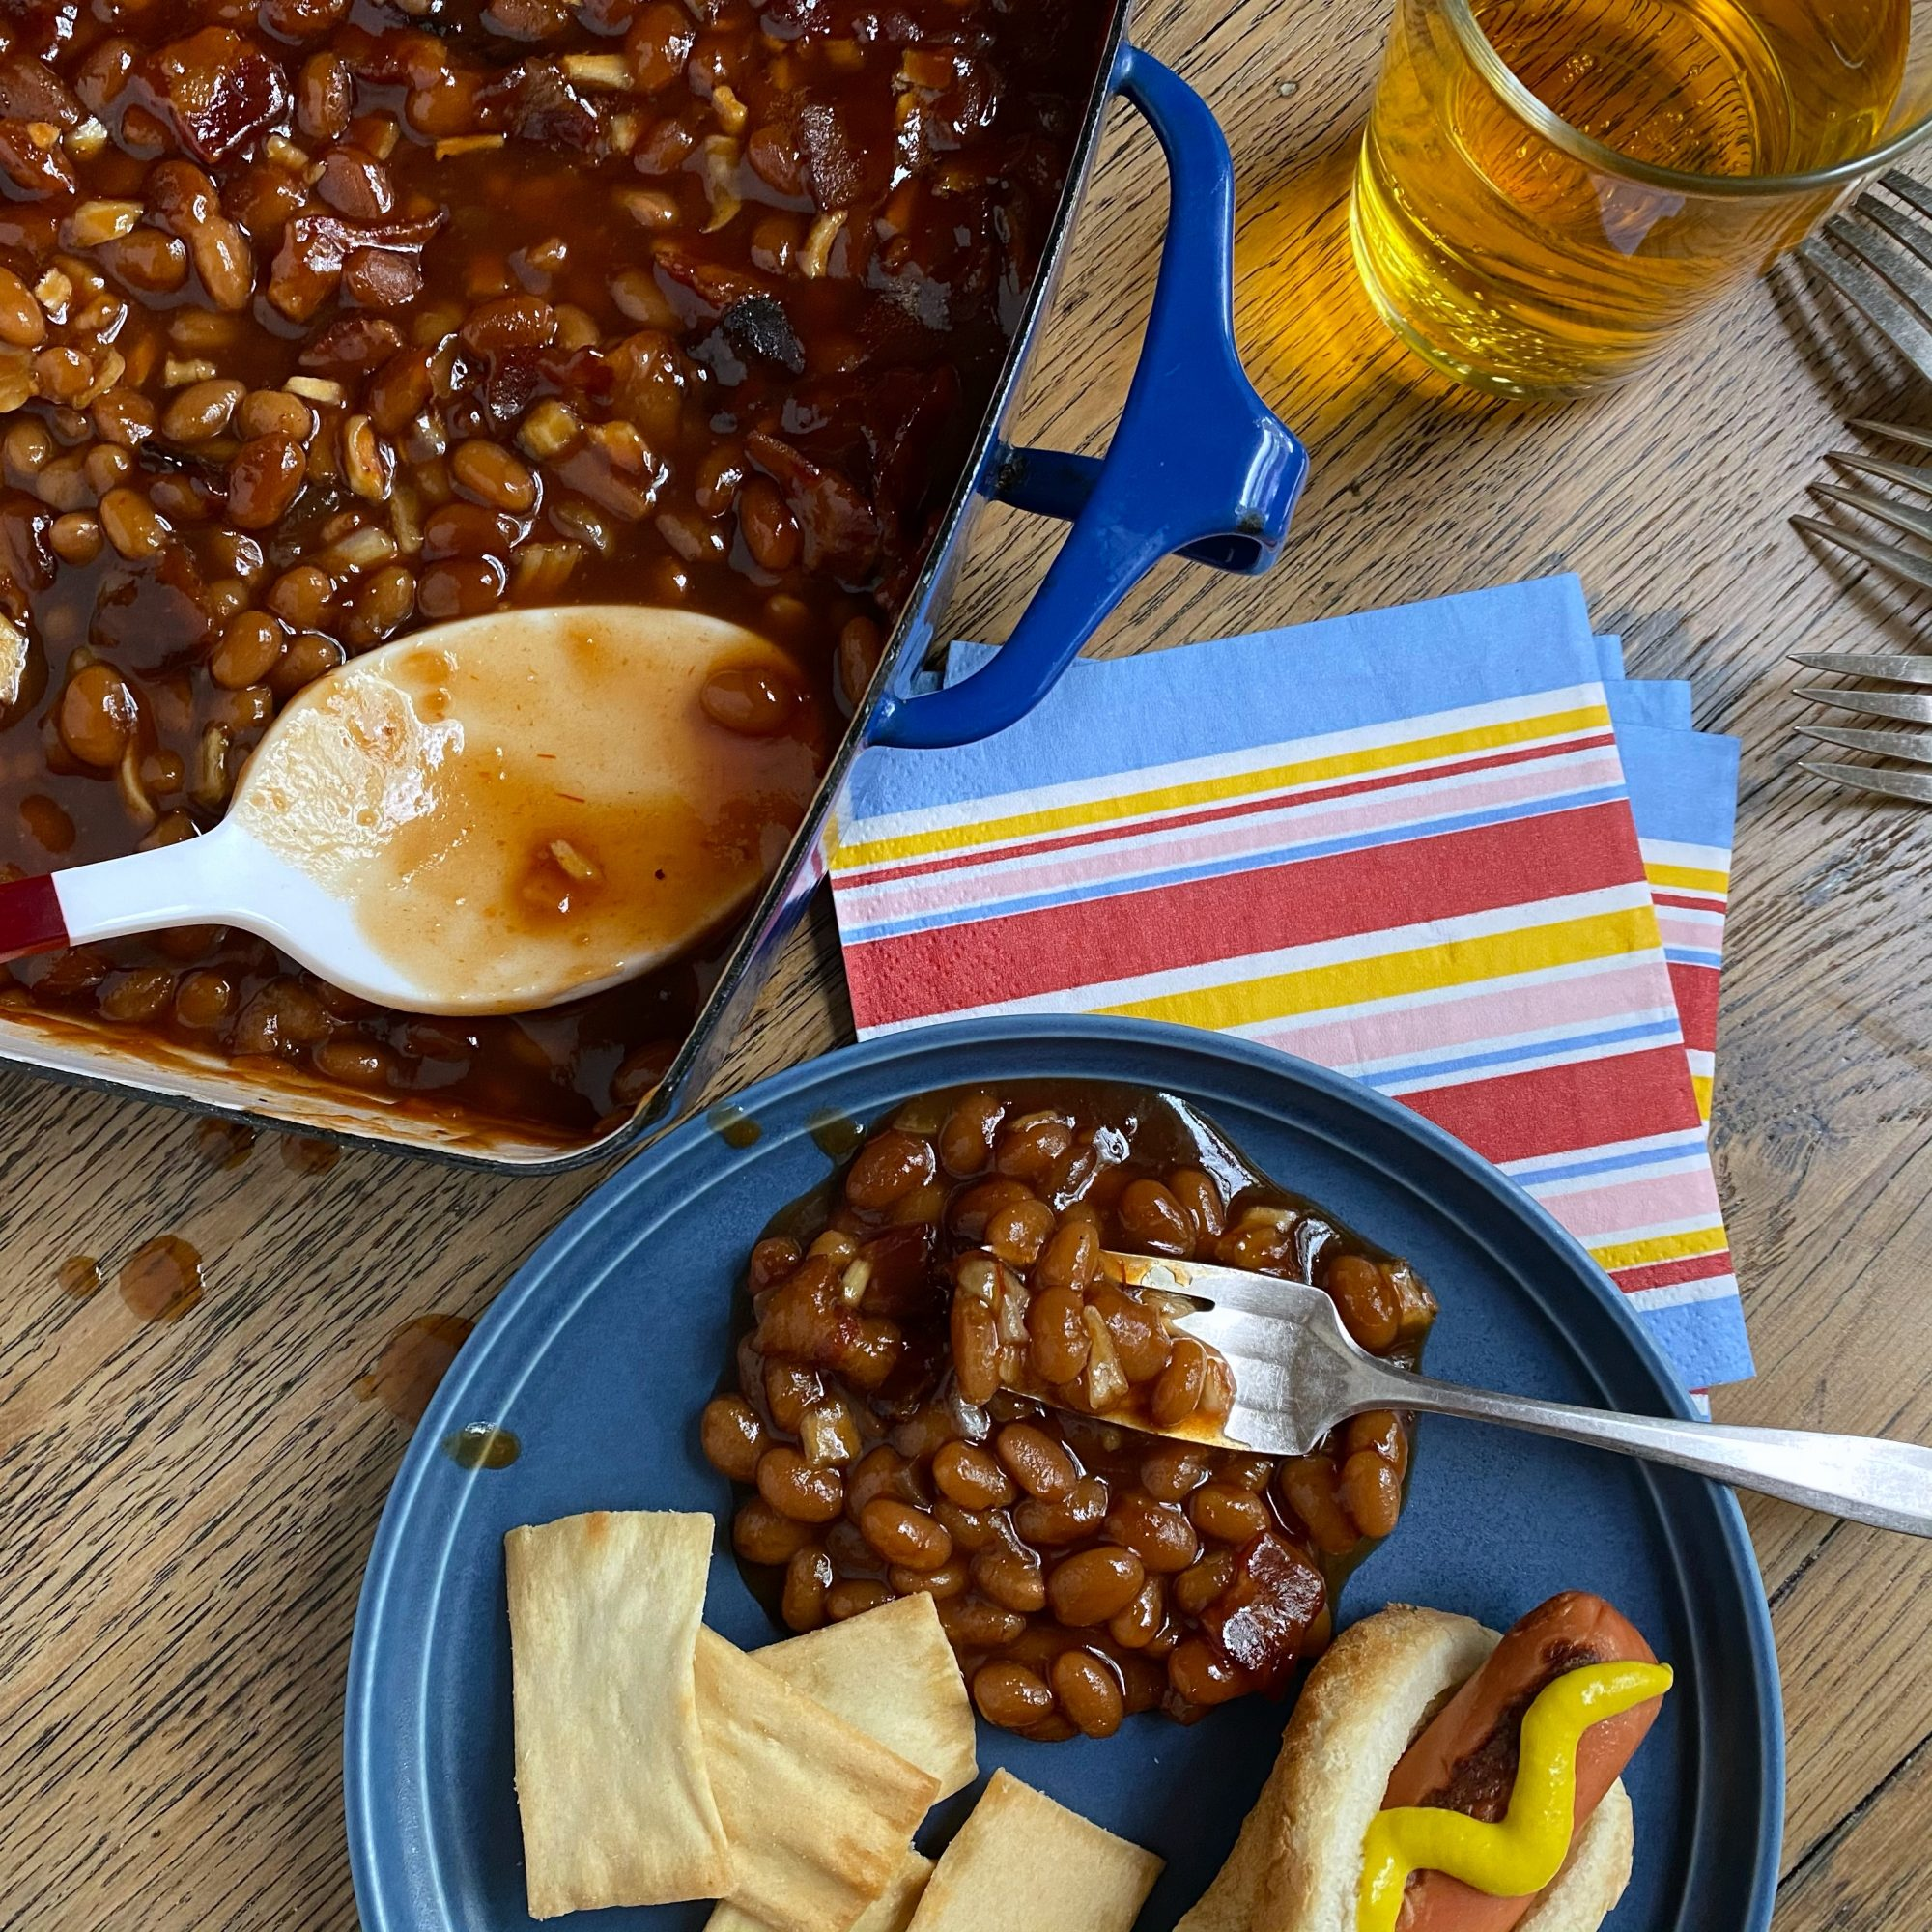 Casserole dish of down home baked beans. A small plate with a serving of beans and a hot dog sit near the casserole dish